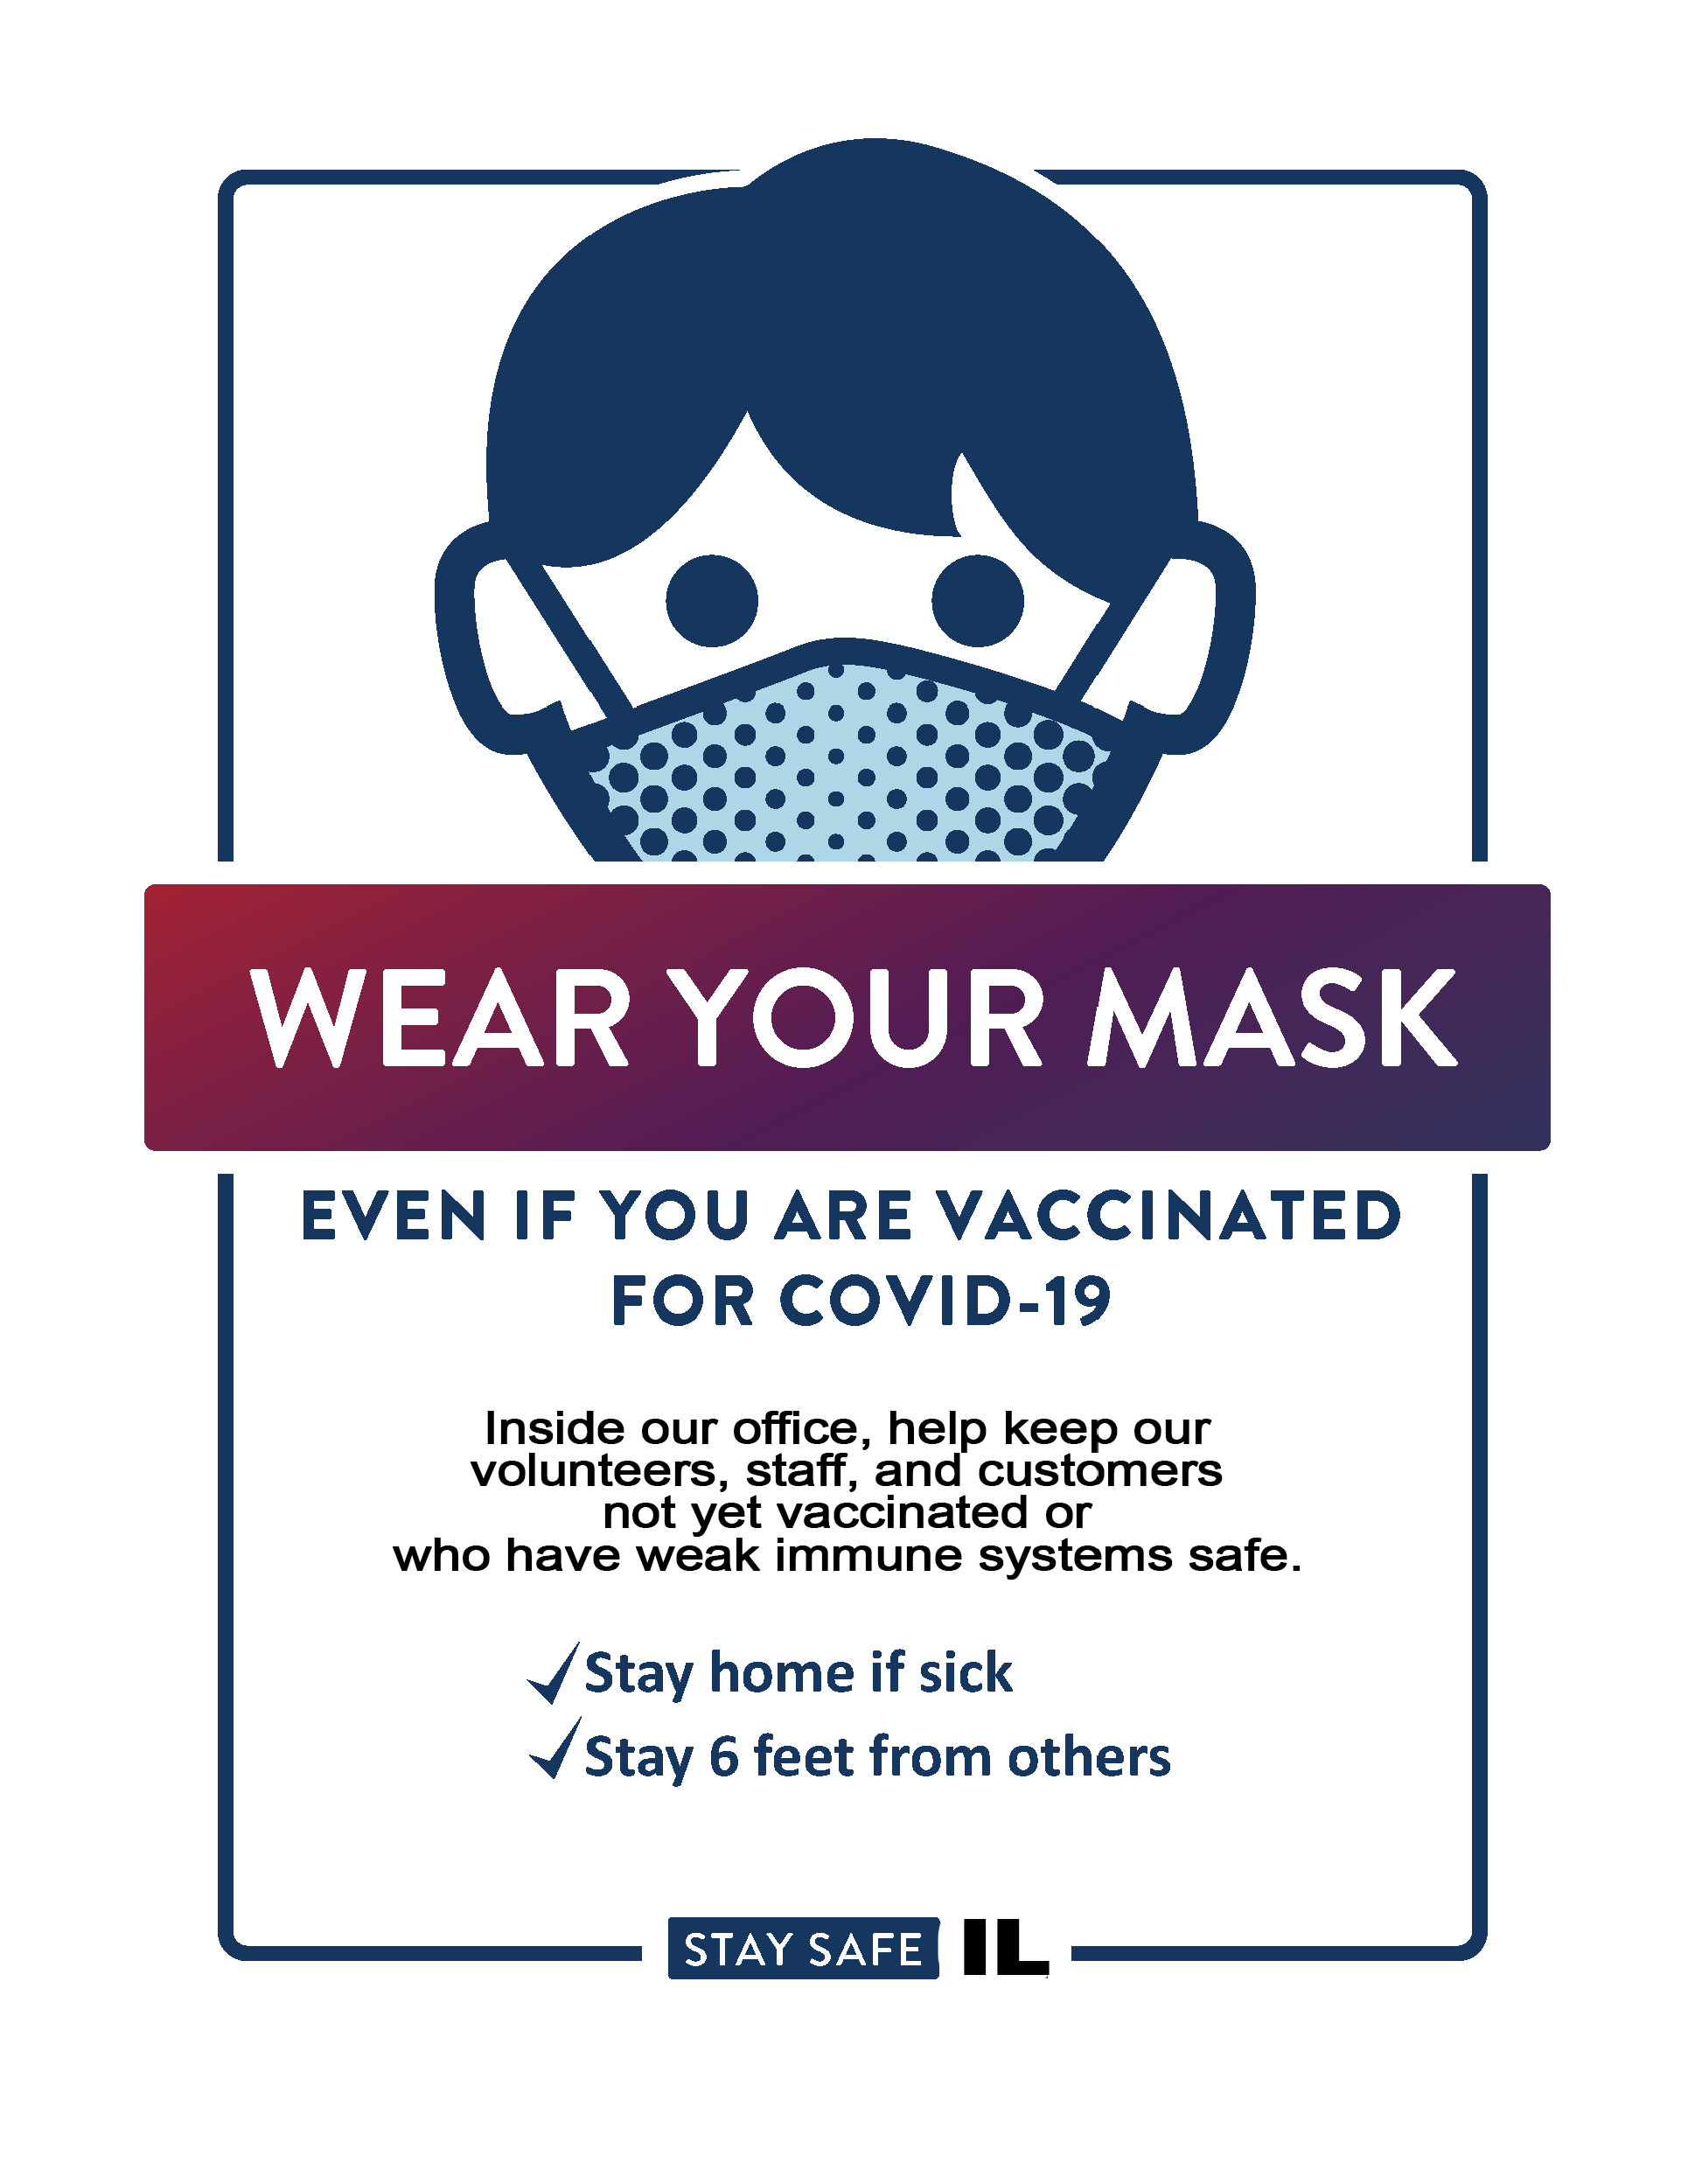 masks_required_after_vax CLCOC[13782]